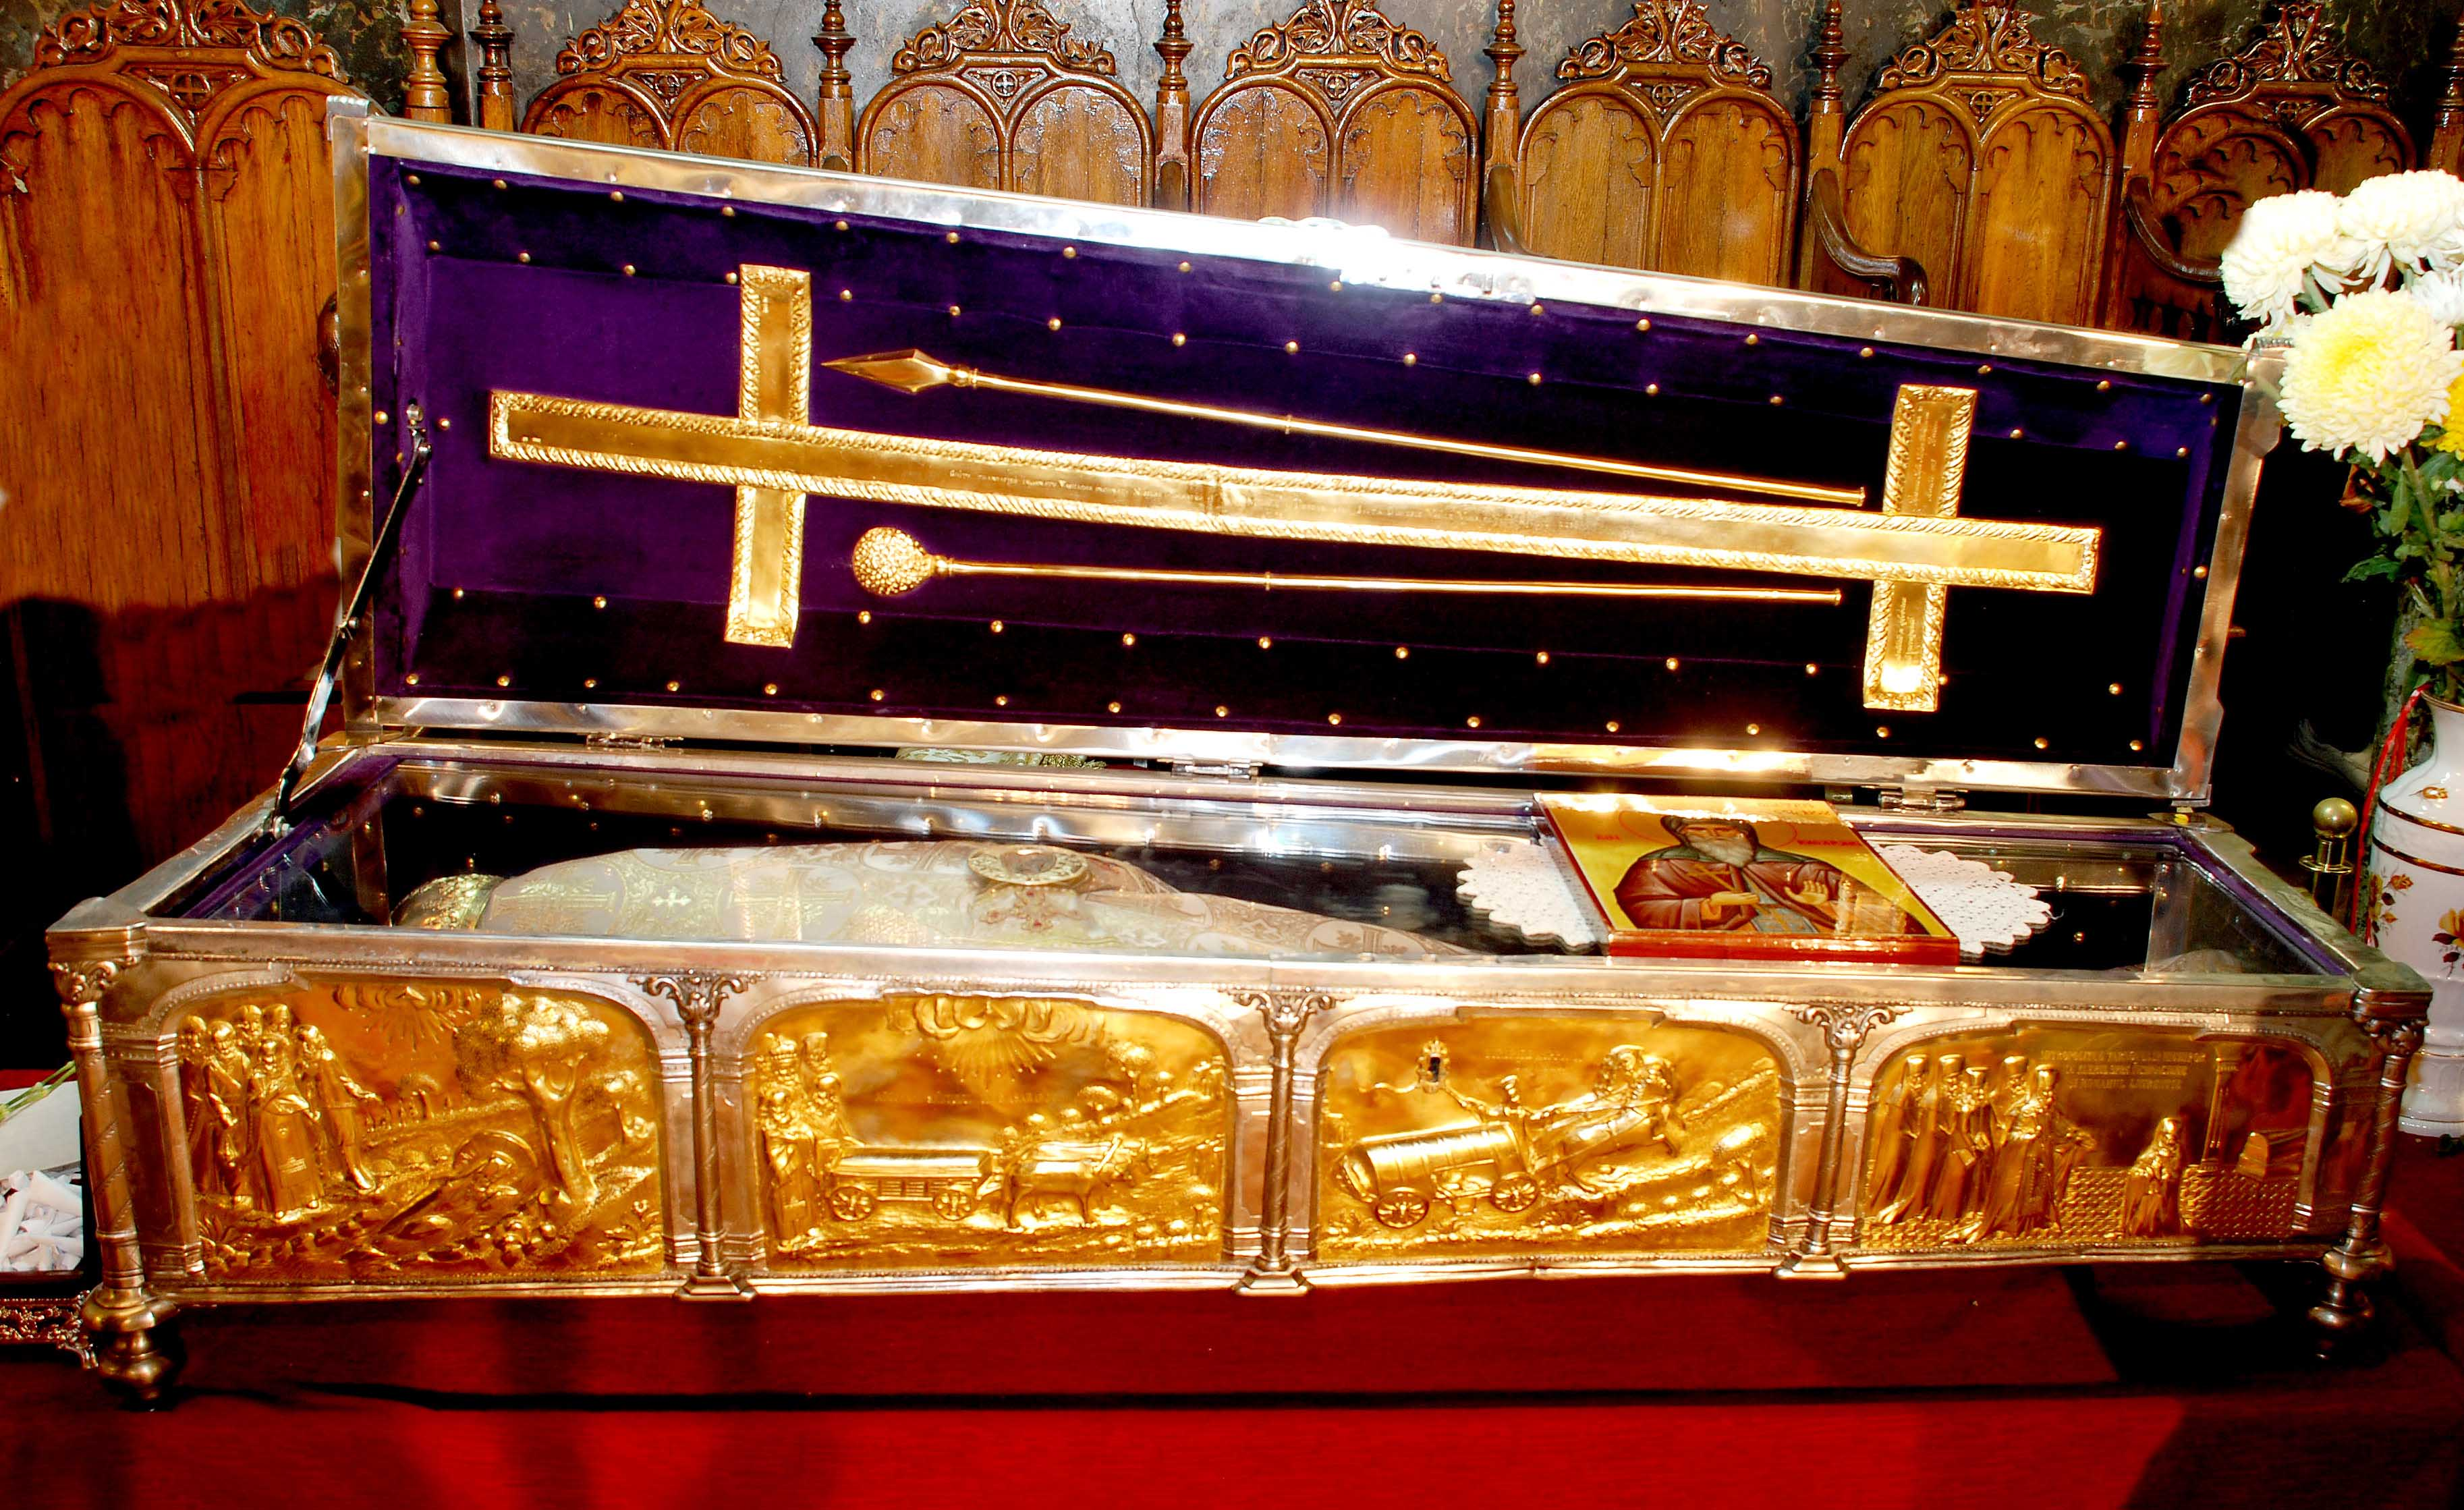 The theft of the relics of Saint Dimitri Basarabov from the Metropolitan Cathedral of Bucharest: a bizarre incident during the German occupation